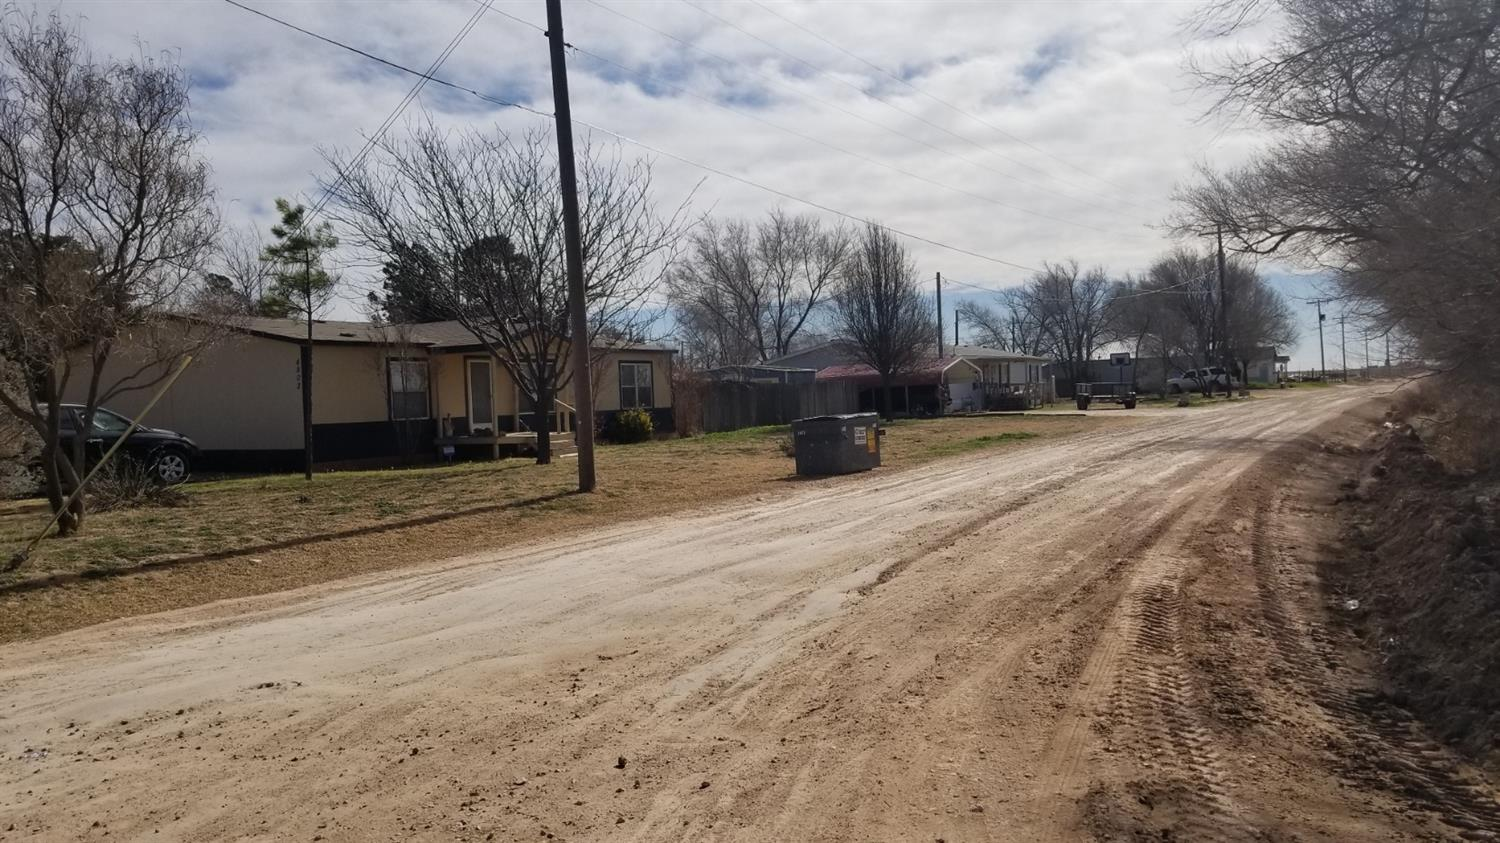 This is a great park with 18 Park owned Mobile Homes and 4 Park owned houses. Includes tractor, truck, tools and all the tools and supplies to keep a park going.  Enough land to add 100 MH's